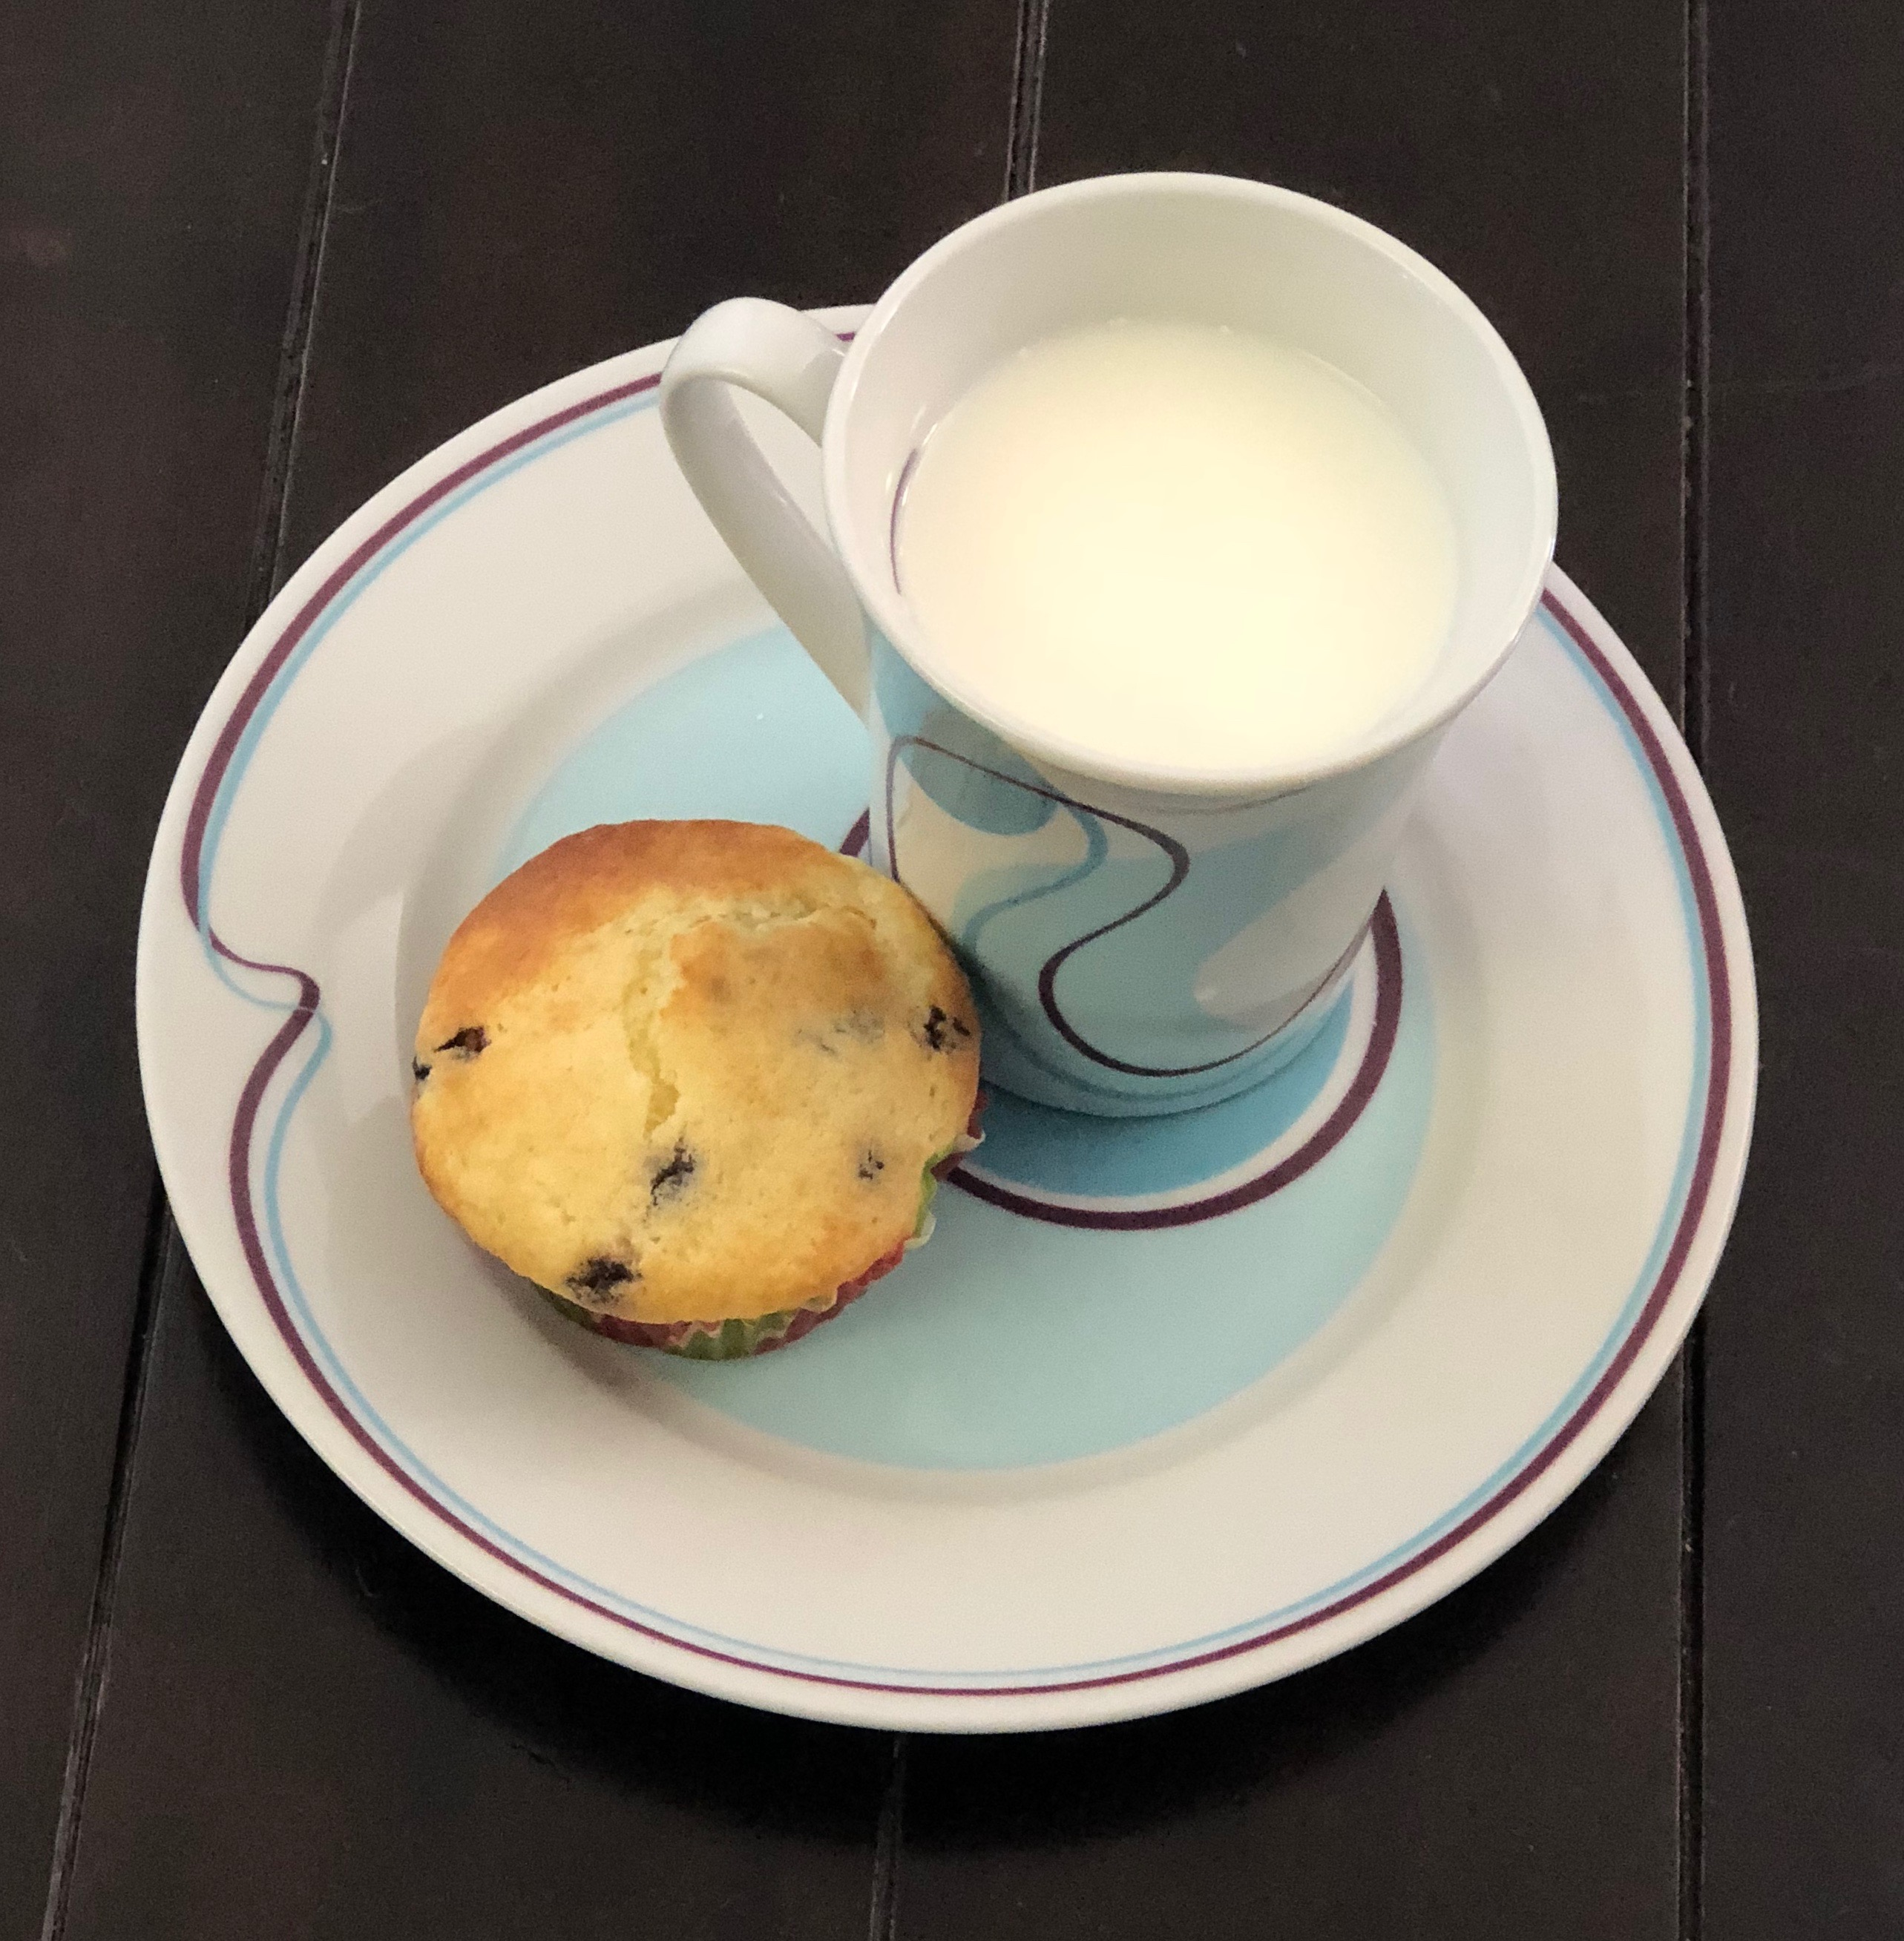 Chef John's Blueberry Muffins